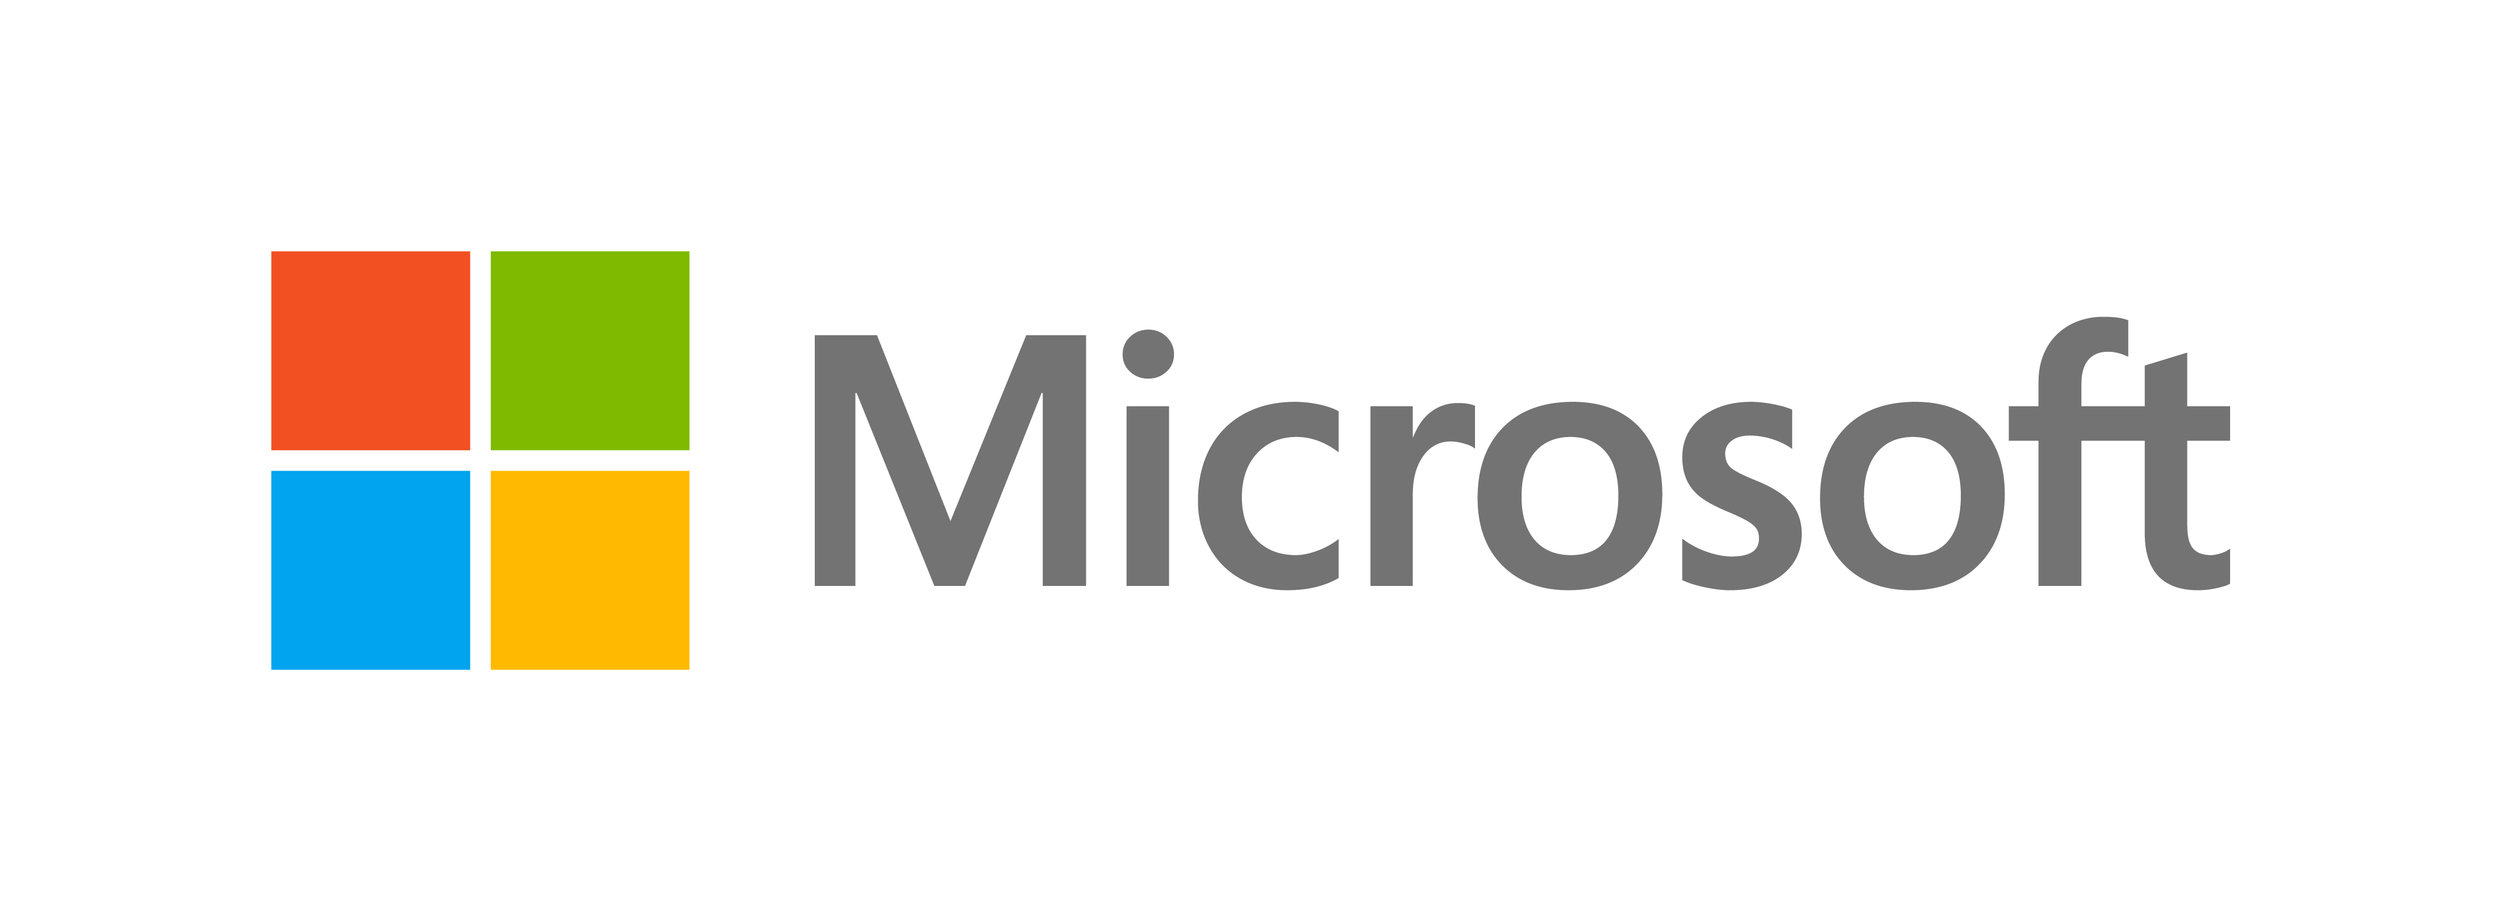 8867.Microsoft_5F00_Logo_2D00_for_2D00_screen.jpeg